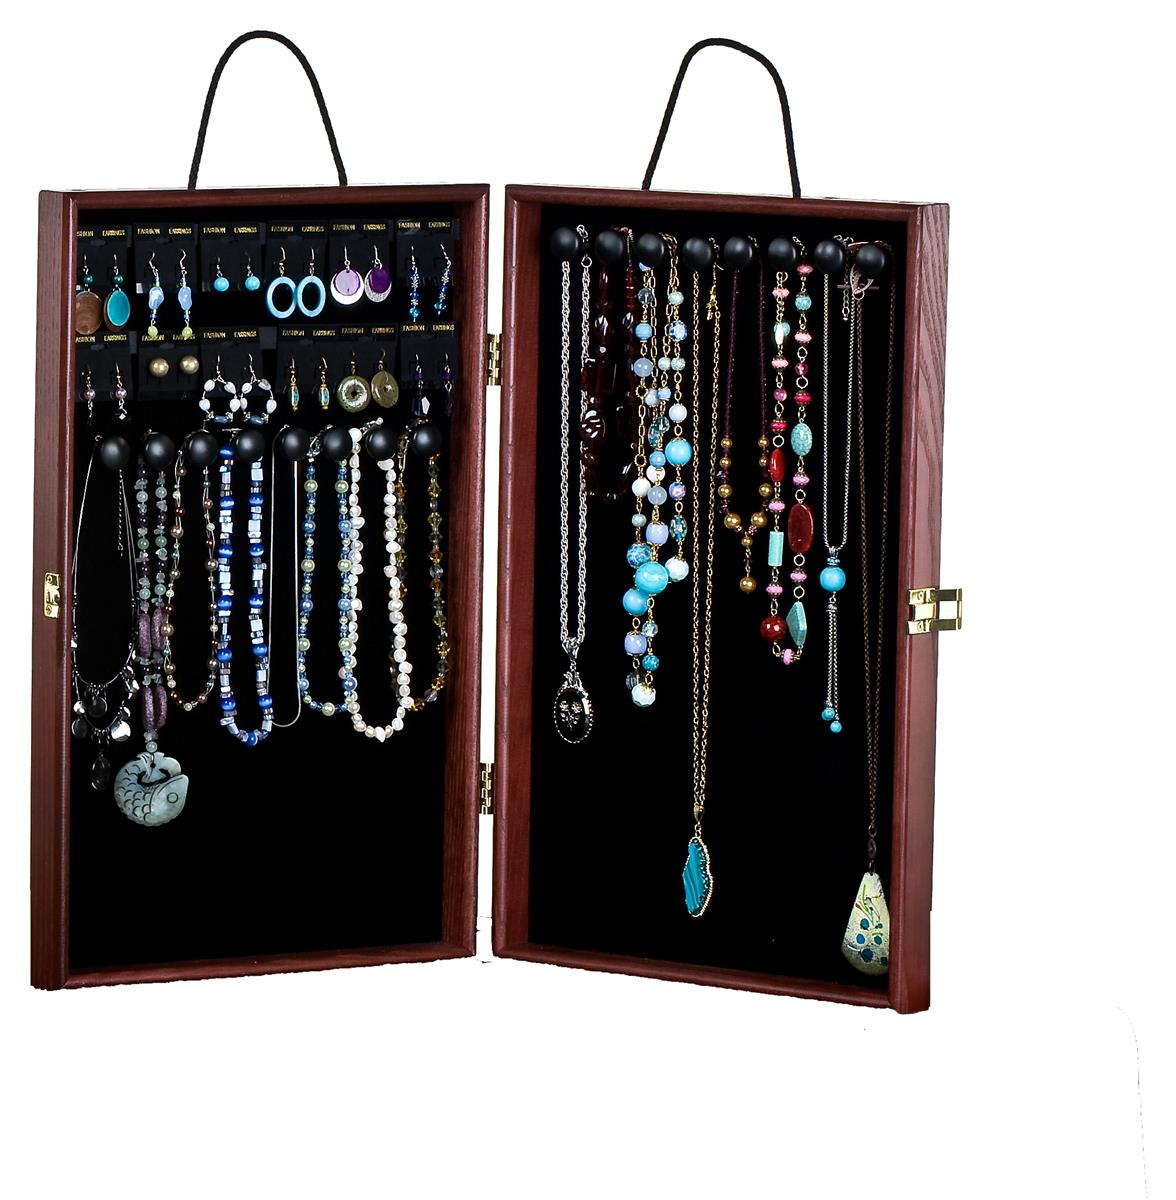 Portable Exhibition Display Cases : Portable jewelry display case velvet interior